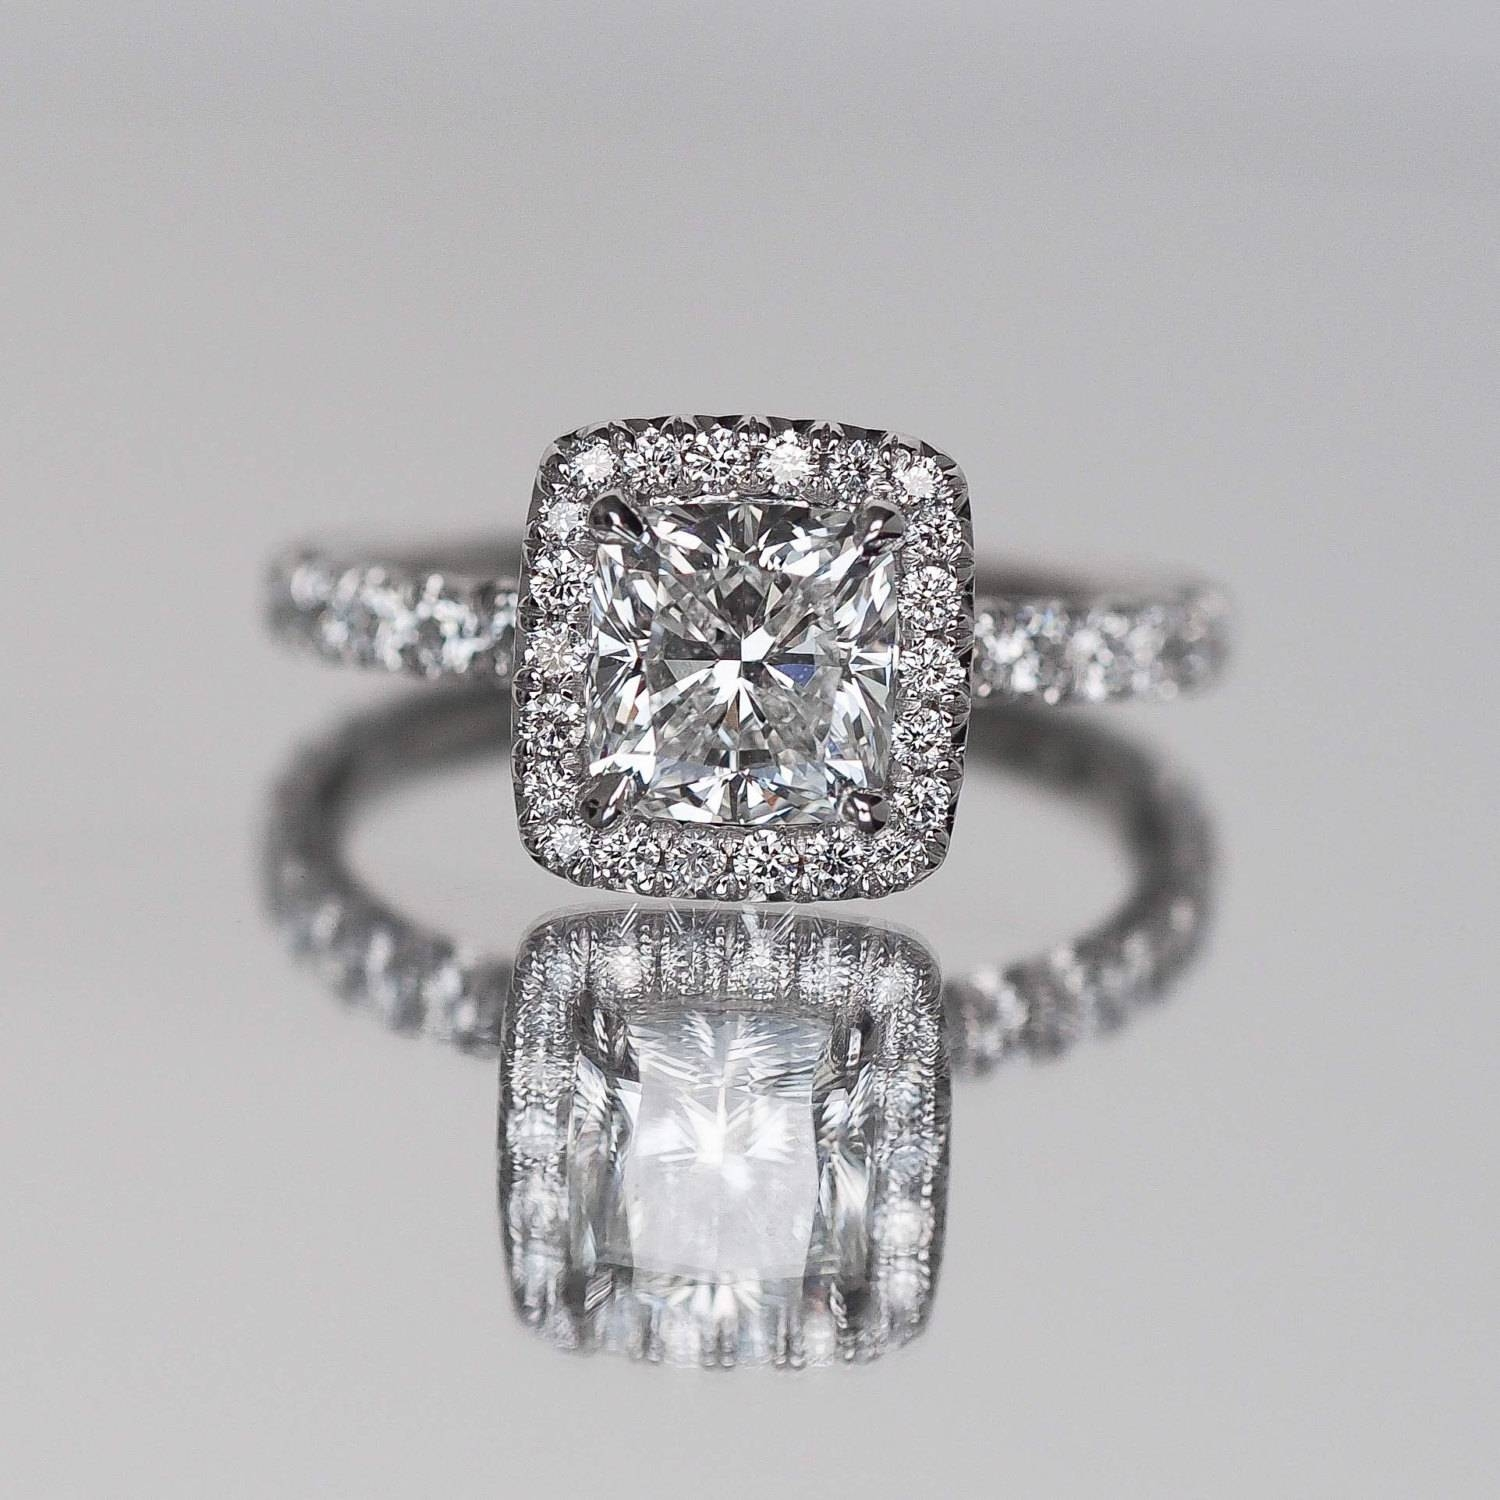 Cushion Cut Engagement Ring With Diamonds On Halo Facing Up Intended For Vvs Engagement Rings (View 9 of 15)